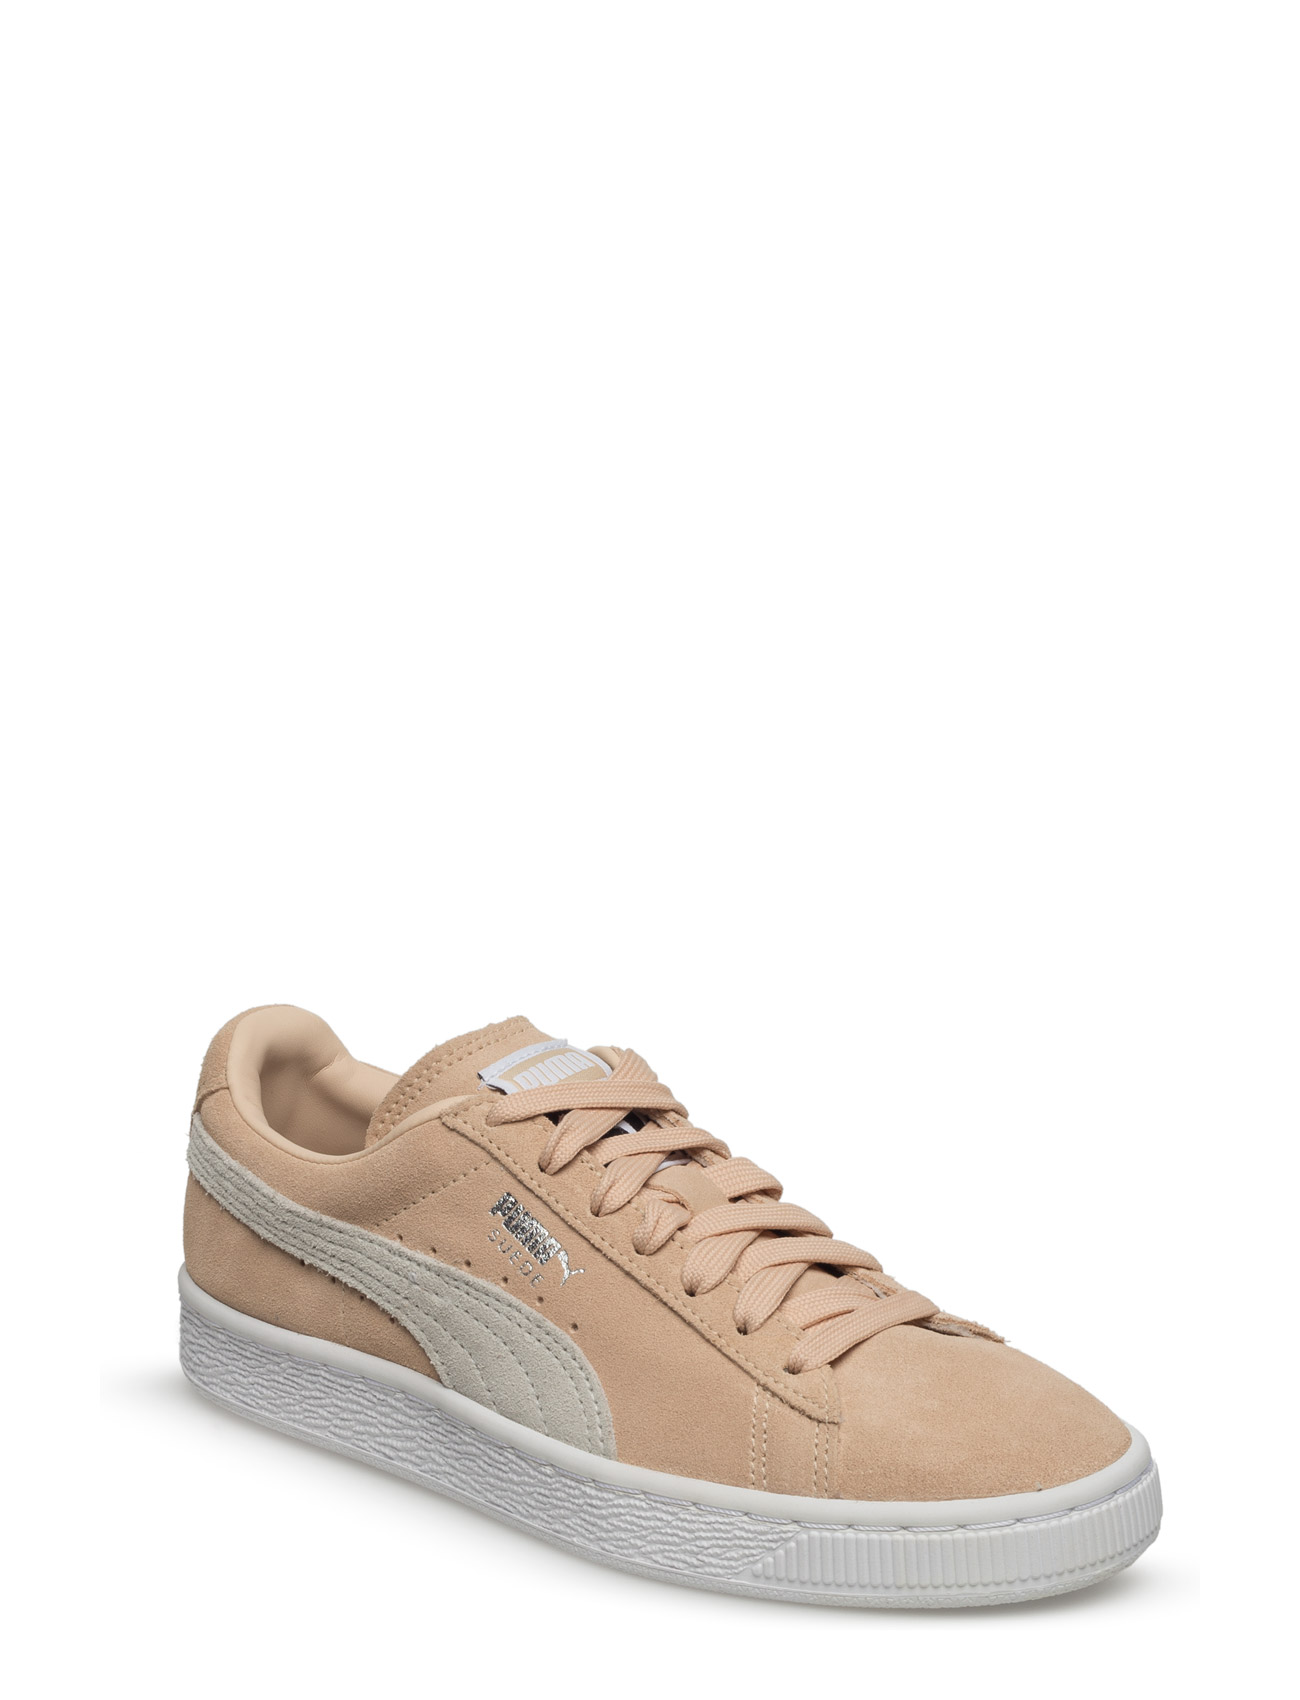 low cost 6556b 89c0f suede classic +